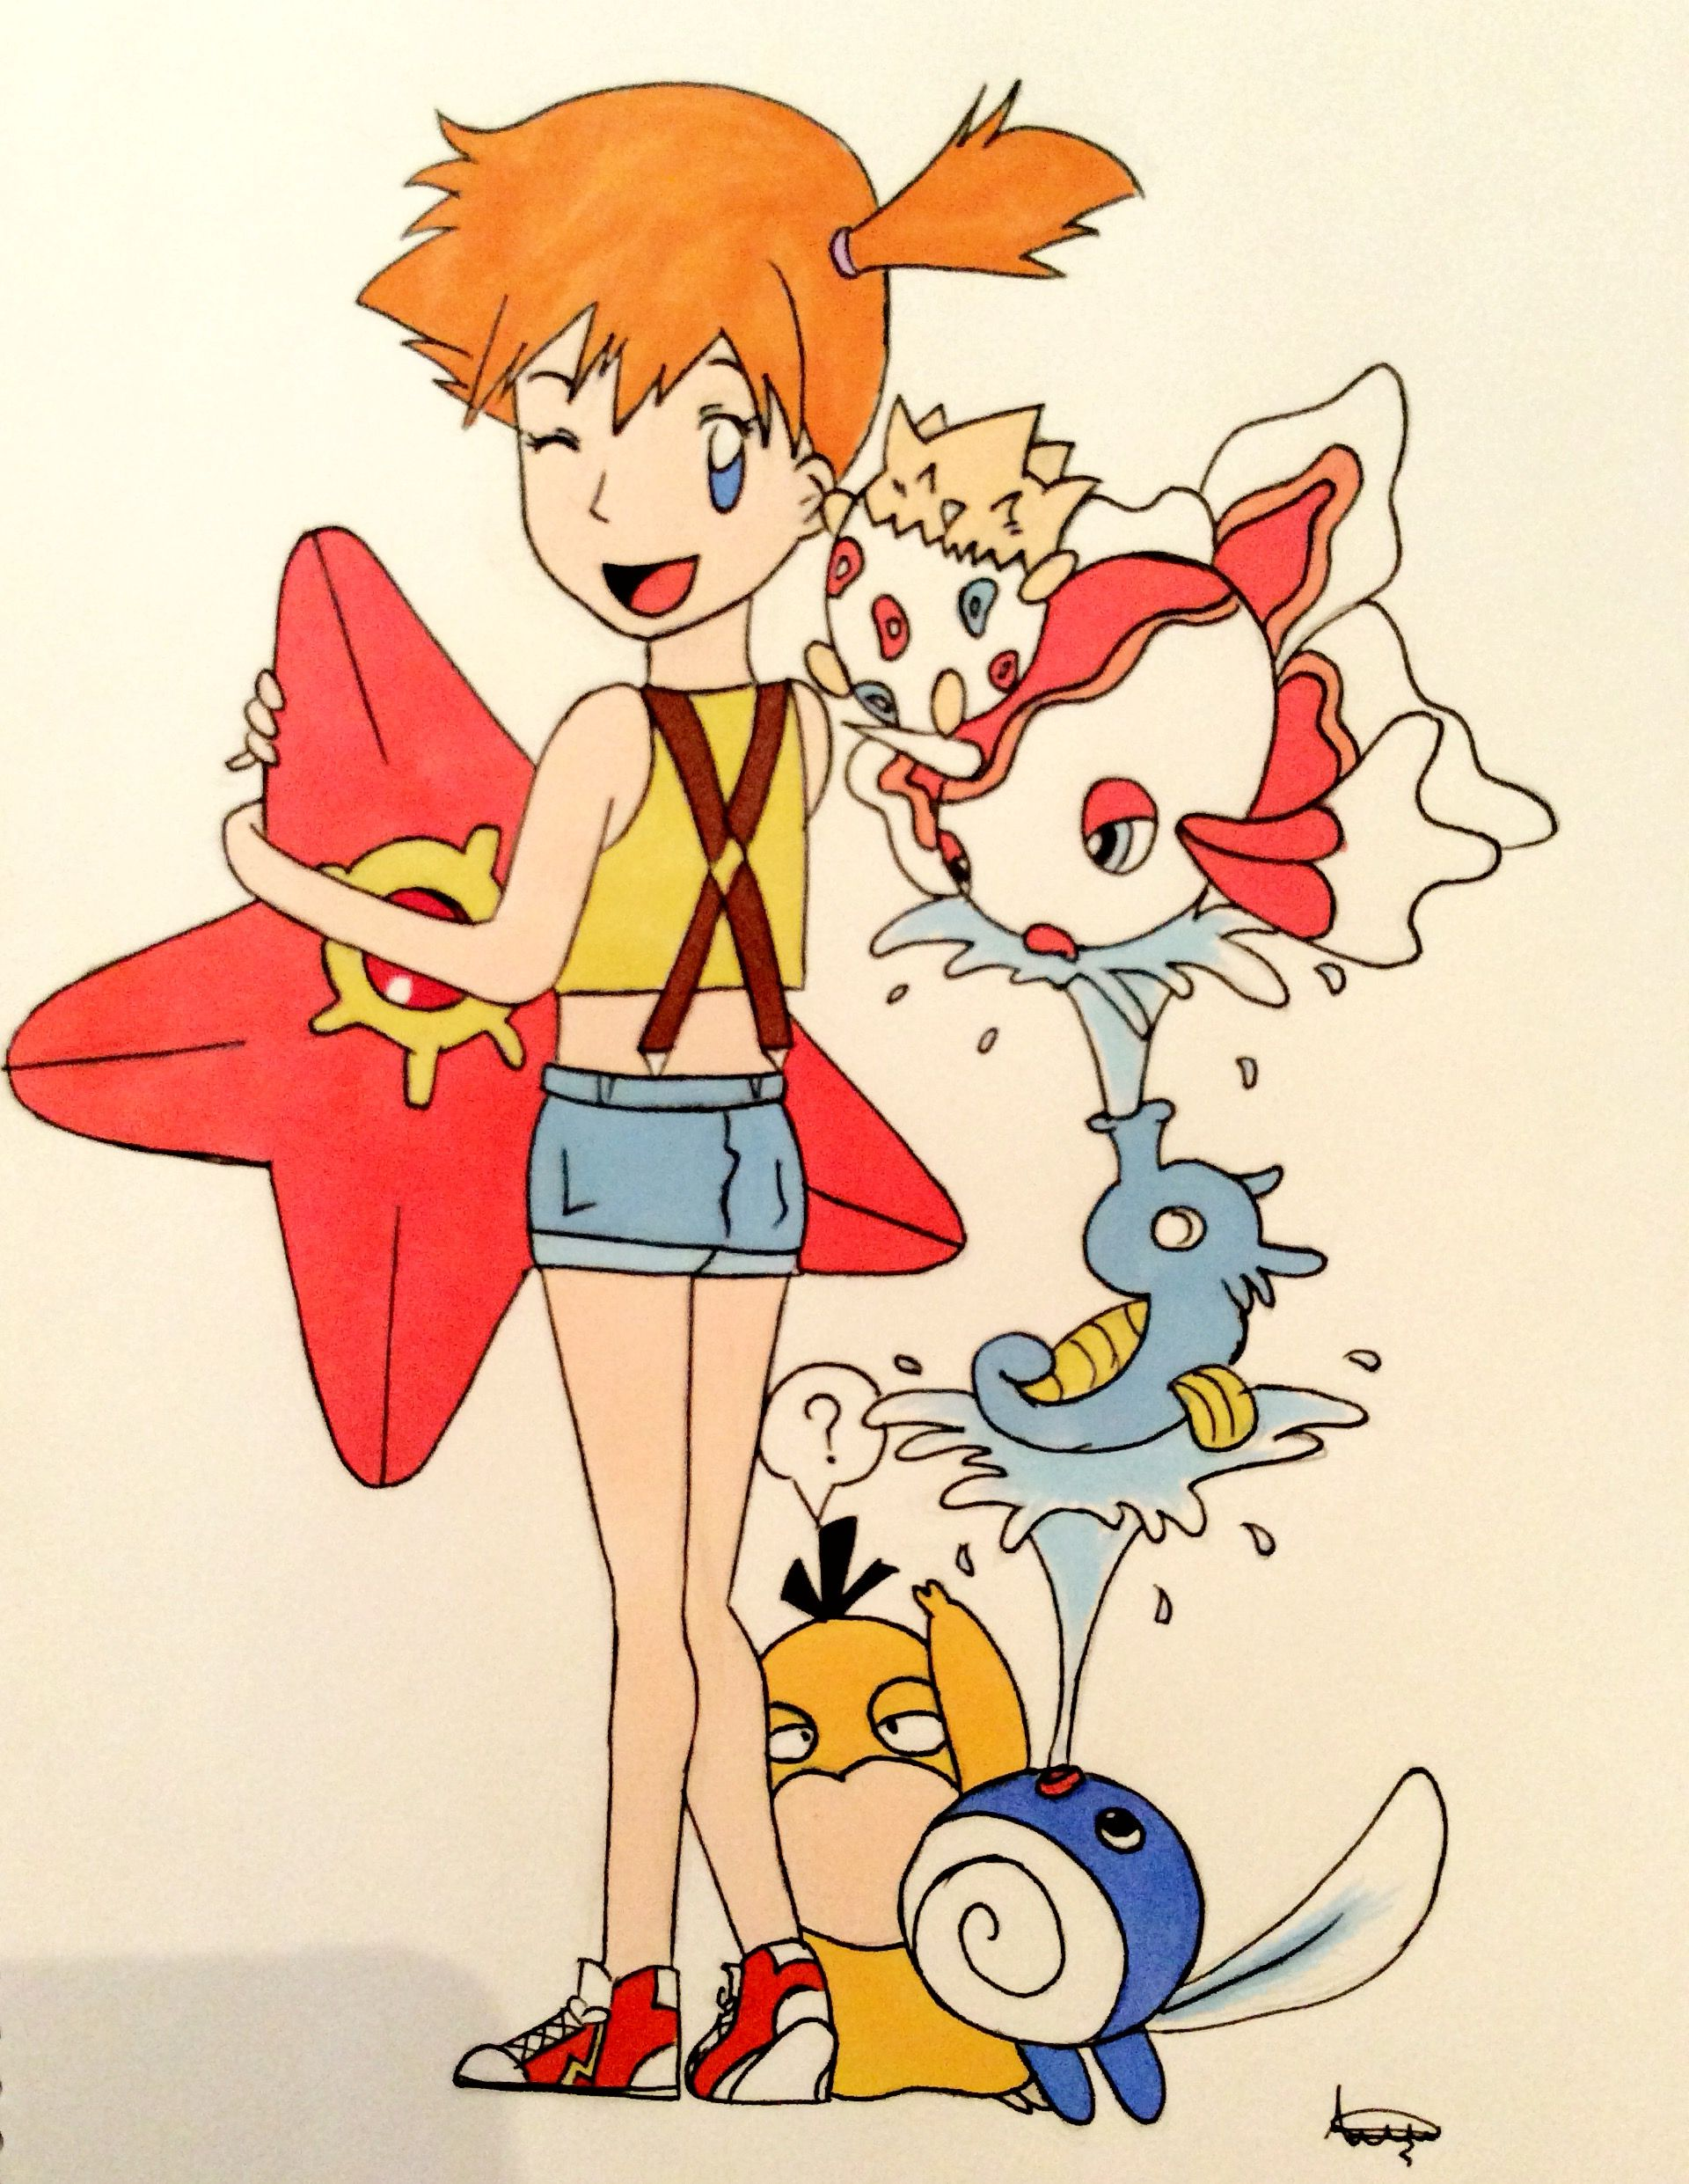 misty from pokemon and most of her pokemon